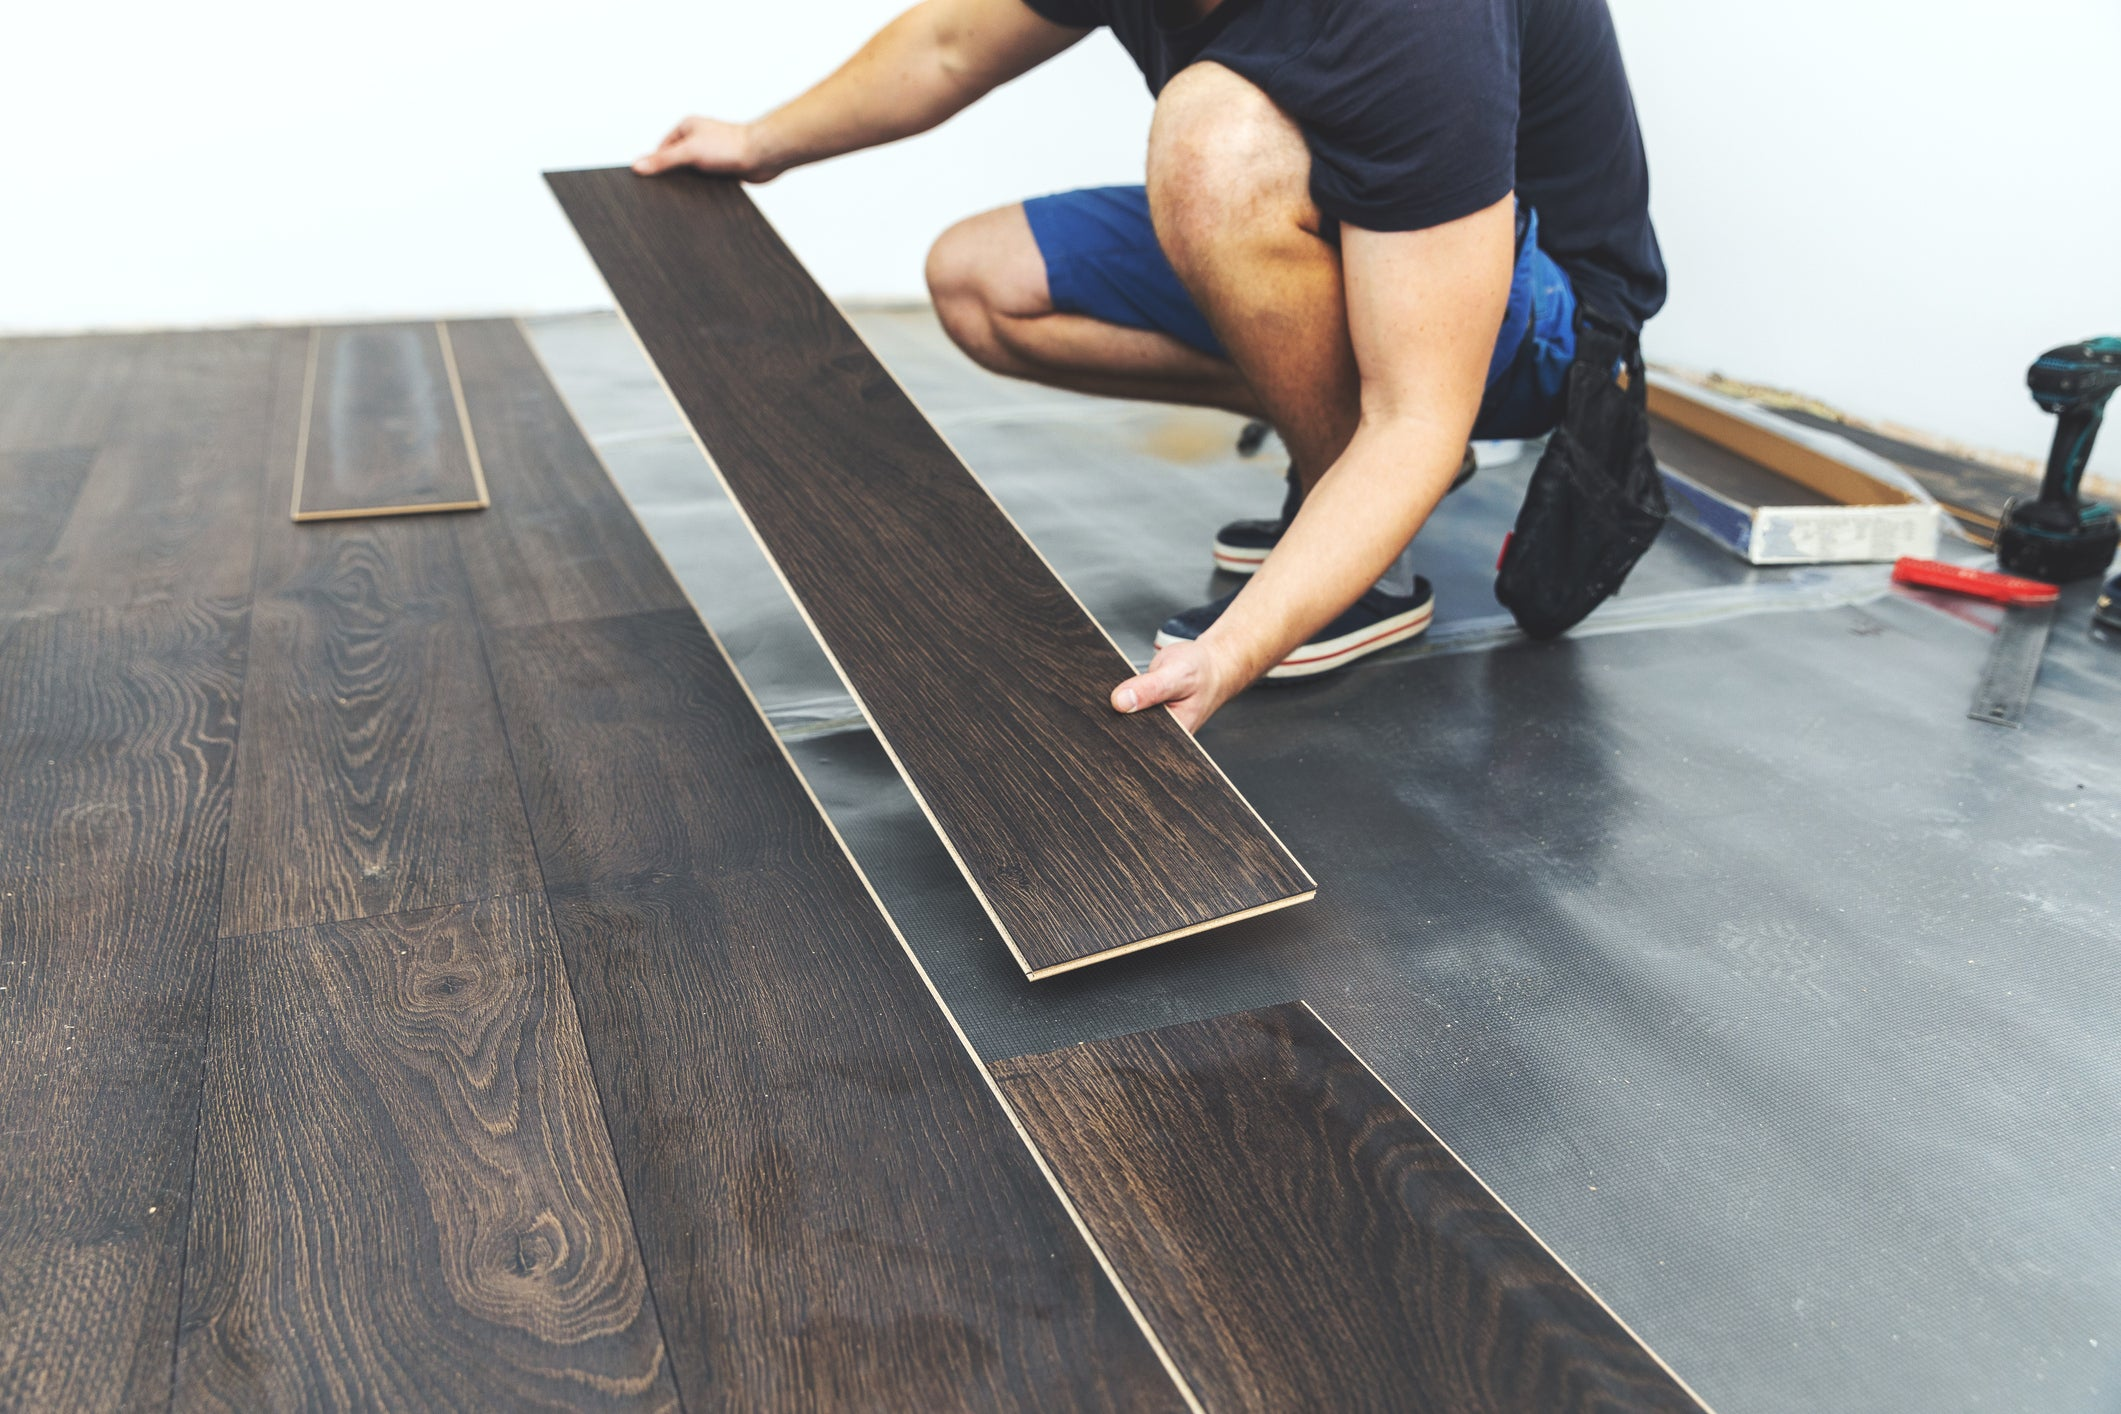 Flooring 101 for Investors: Everything